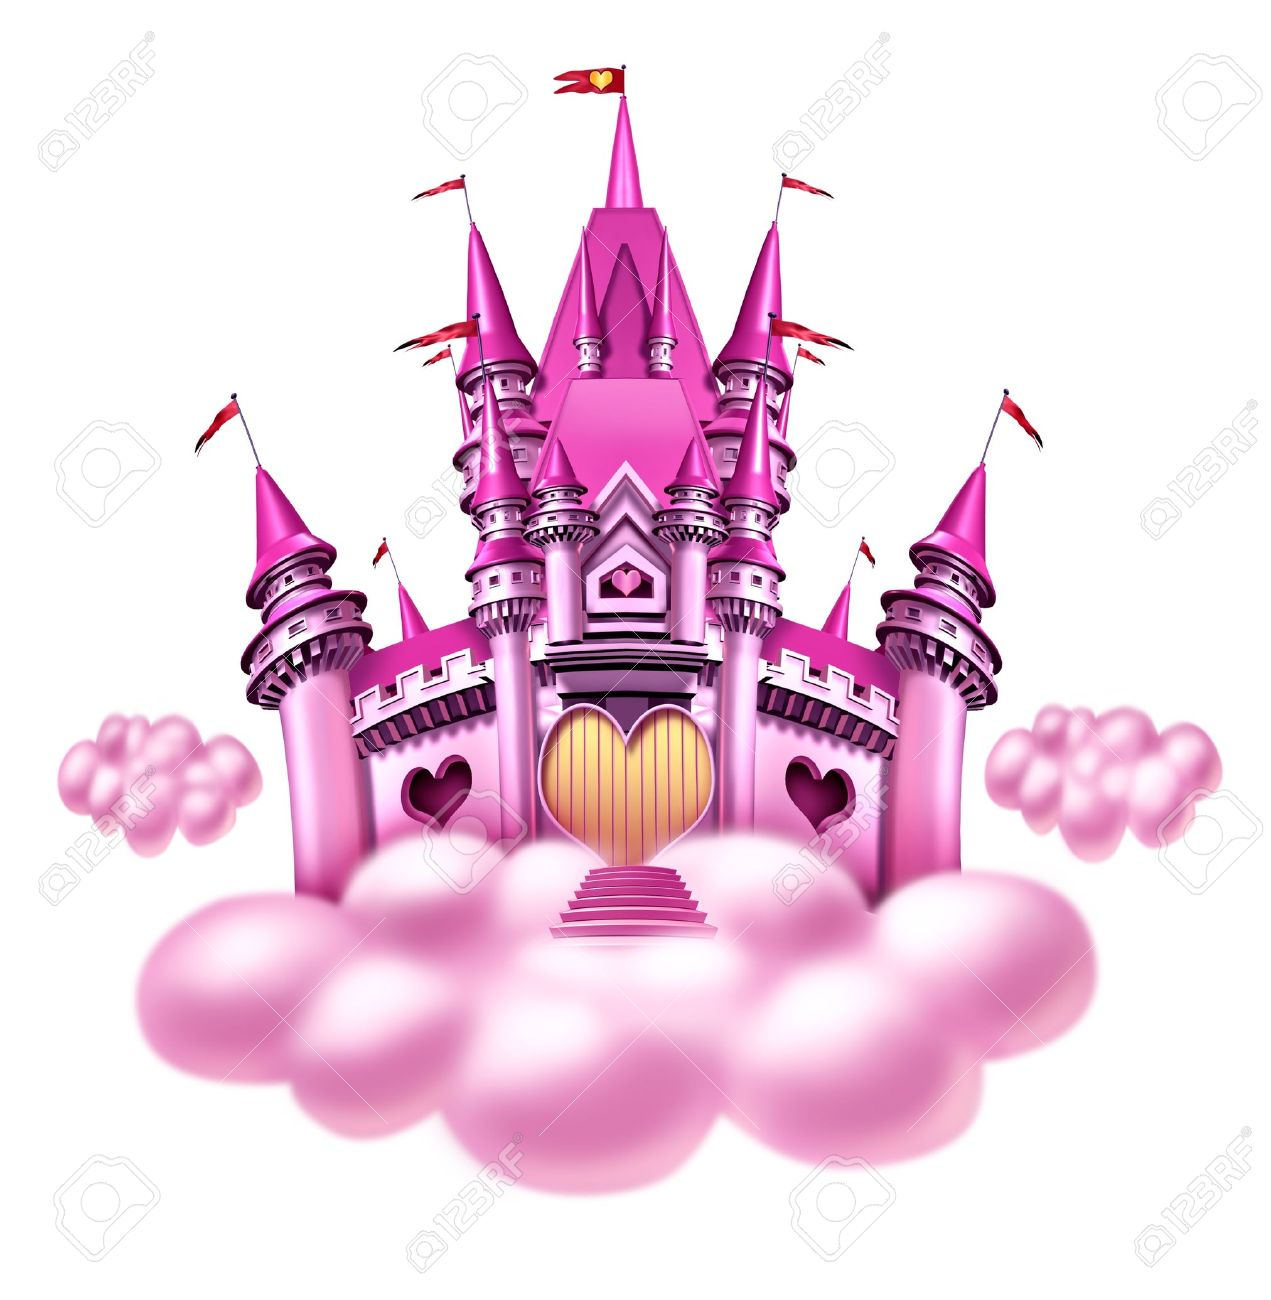 Fantasy princess cloud castle with a fun pink magical kingdom floating on a fluffy cloud as a girls toy dream or dreaming of a fairy tale of nobility with heart shapes and magic elegance Stock Photo - 12882211